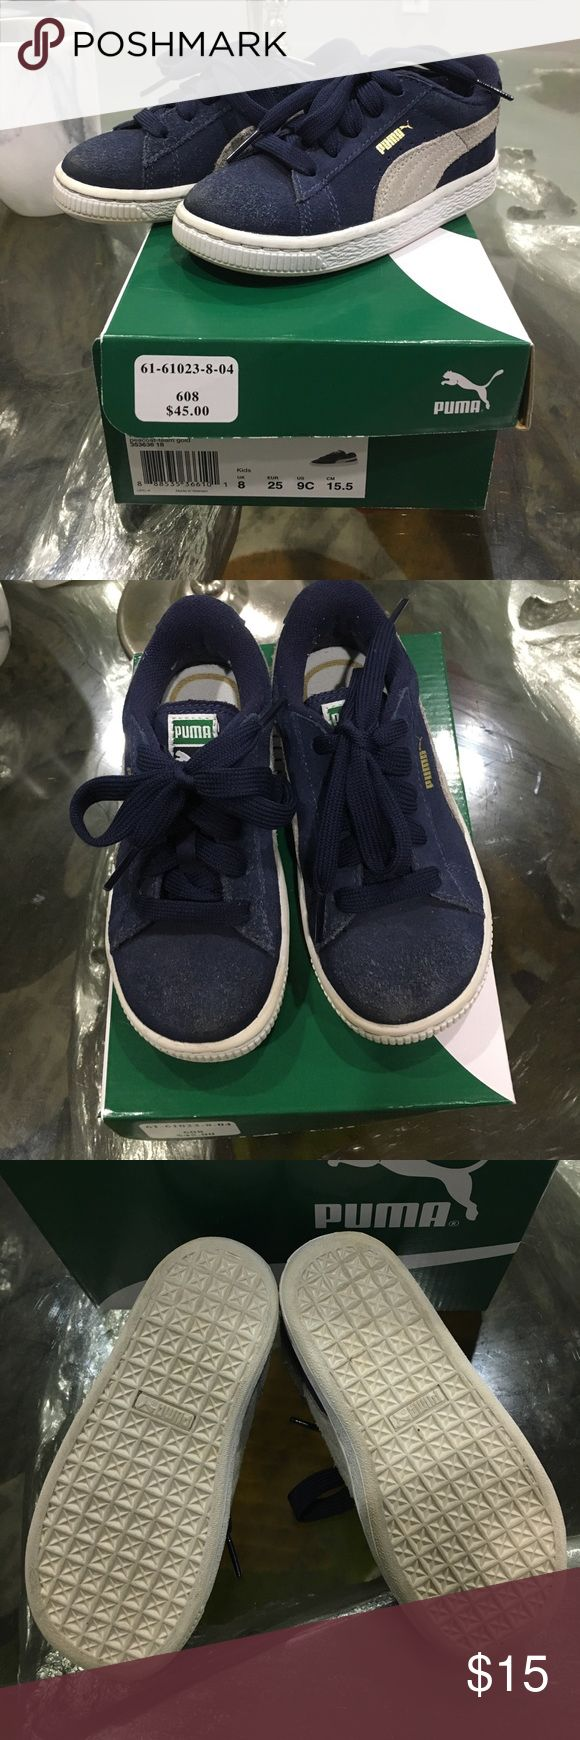 Blue Puma Suede Sz 9 Slightly worn. Suede shows wear near toes, can be brushed out with suede nuback brush. Great play shoes! Puma Shoes Sneakers